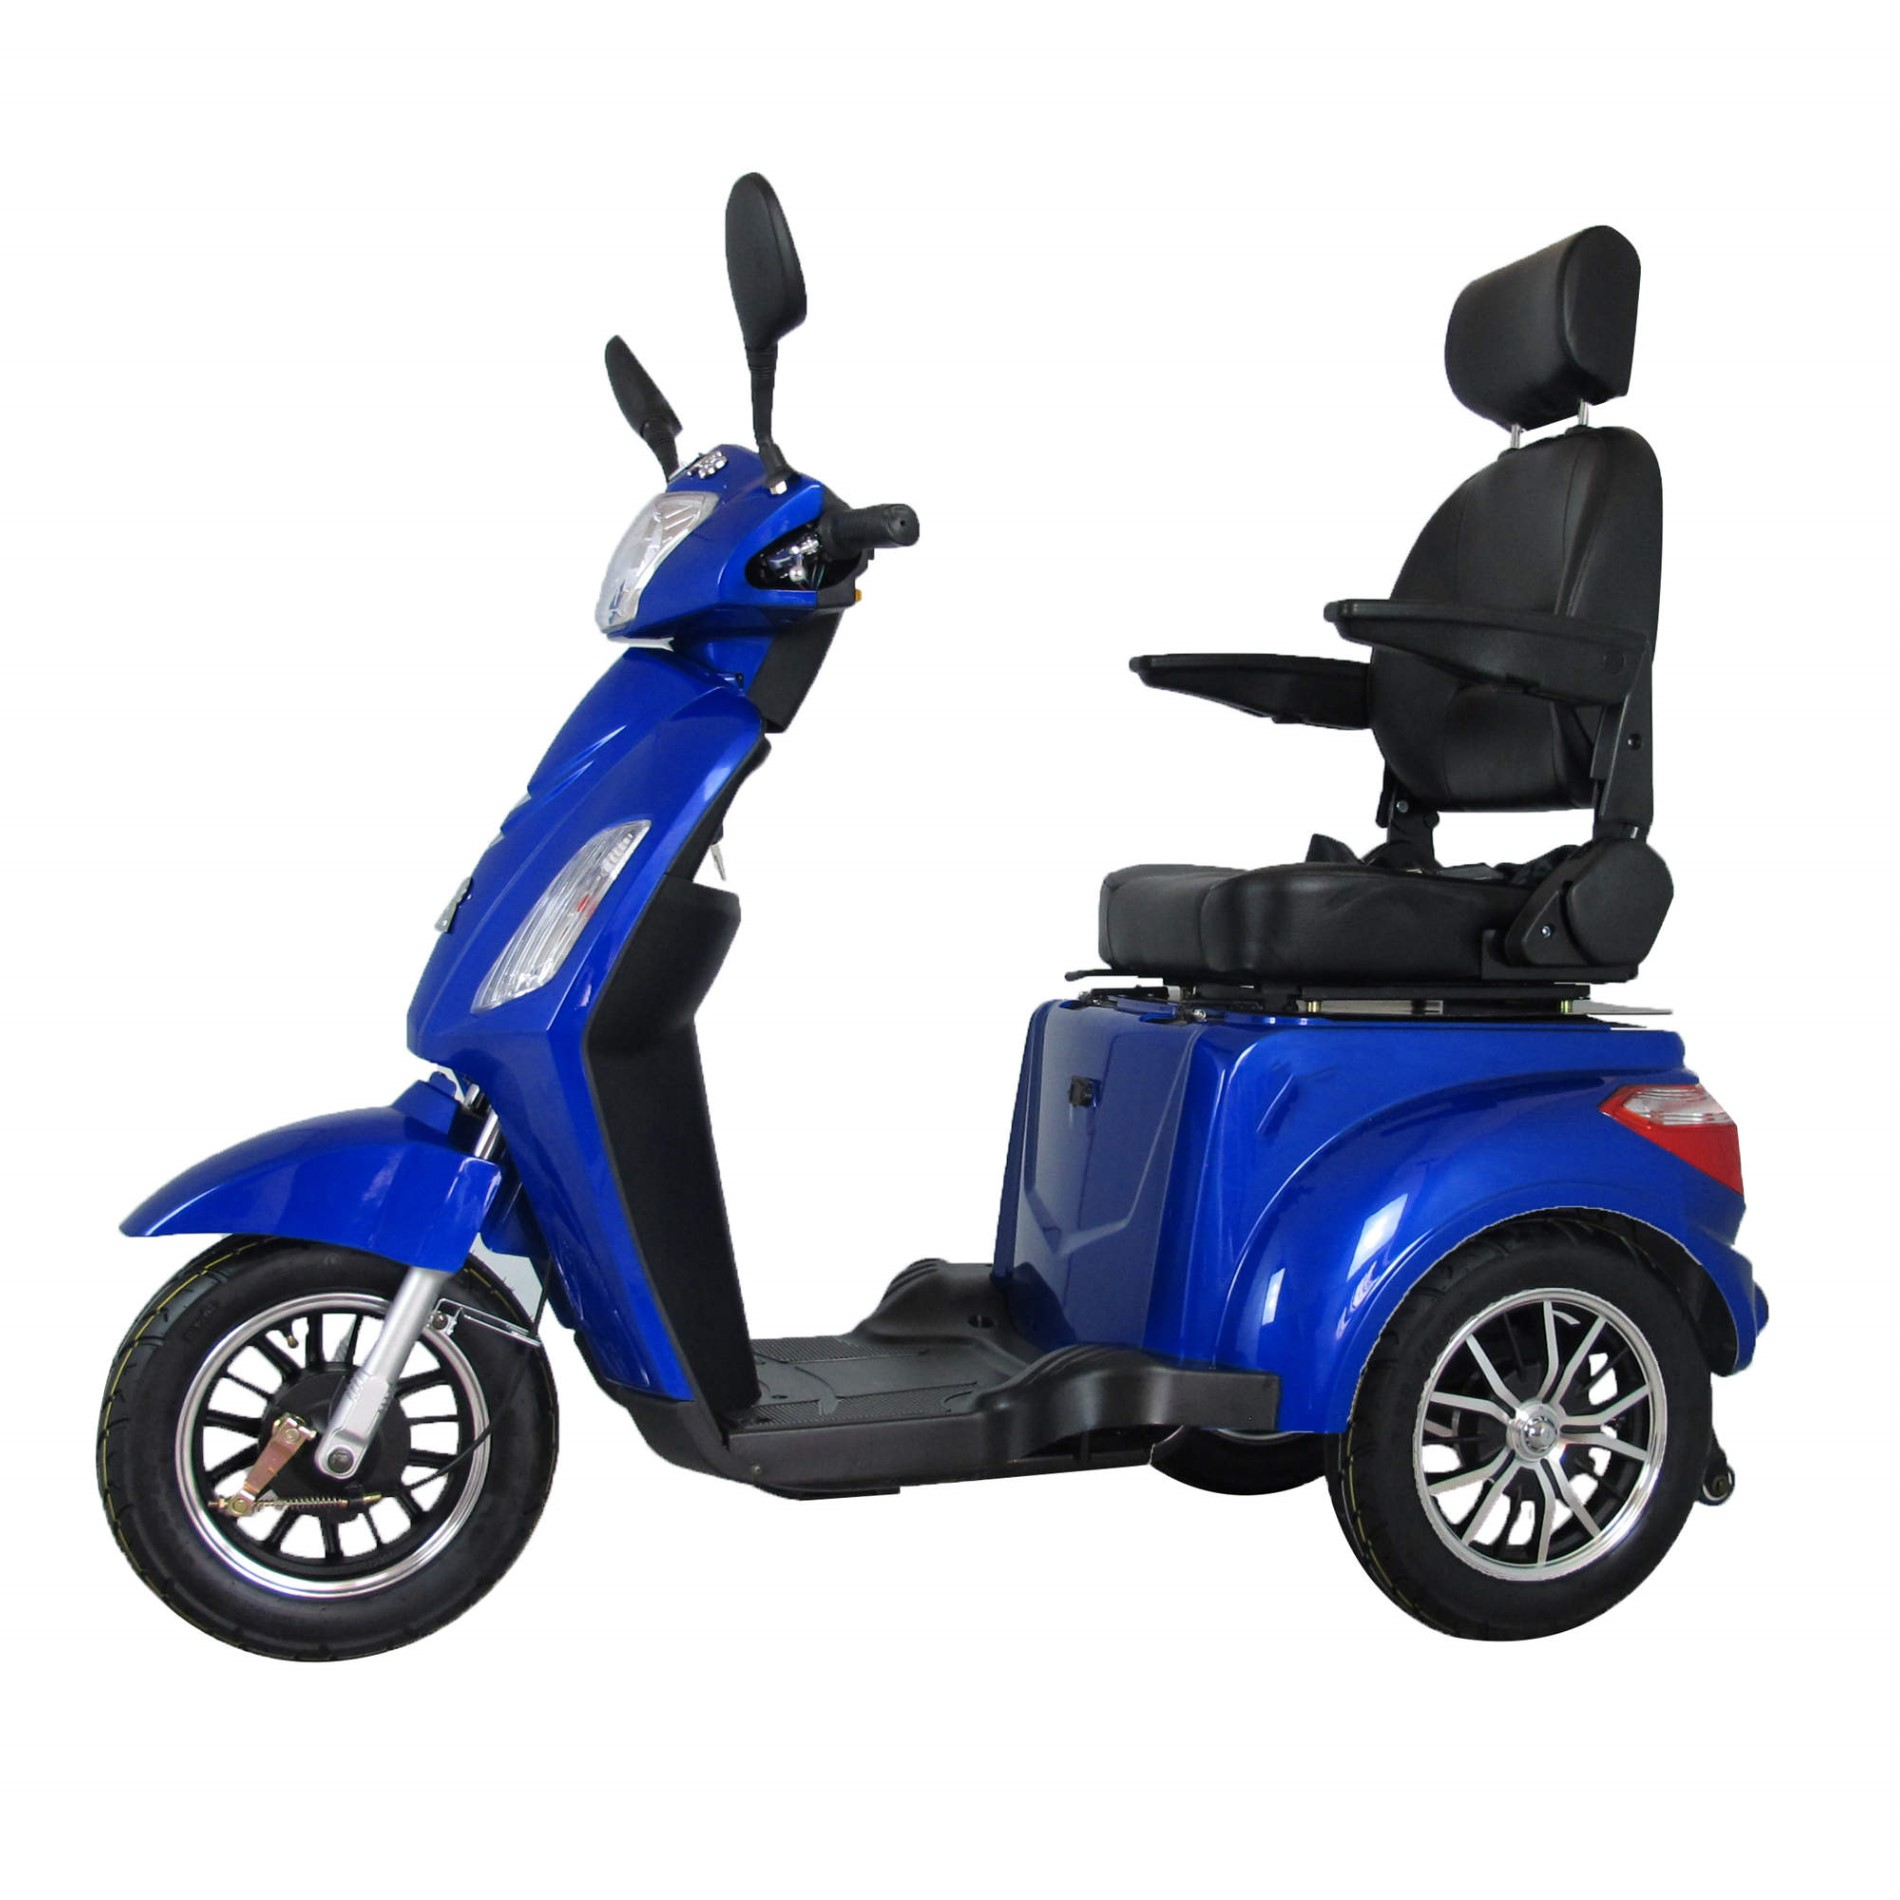 High quality Motorized Electric Scooter For Adults Quotes,China Motorized Electric Scooter For Adults Factory,Motorized Electric Scooter For Adults Purchasing